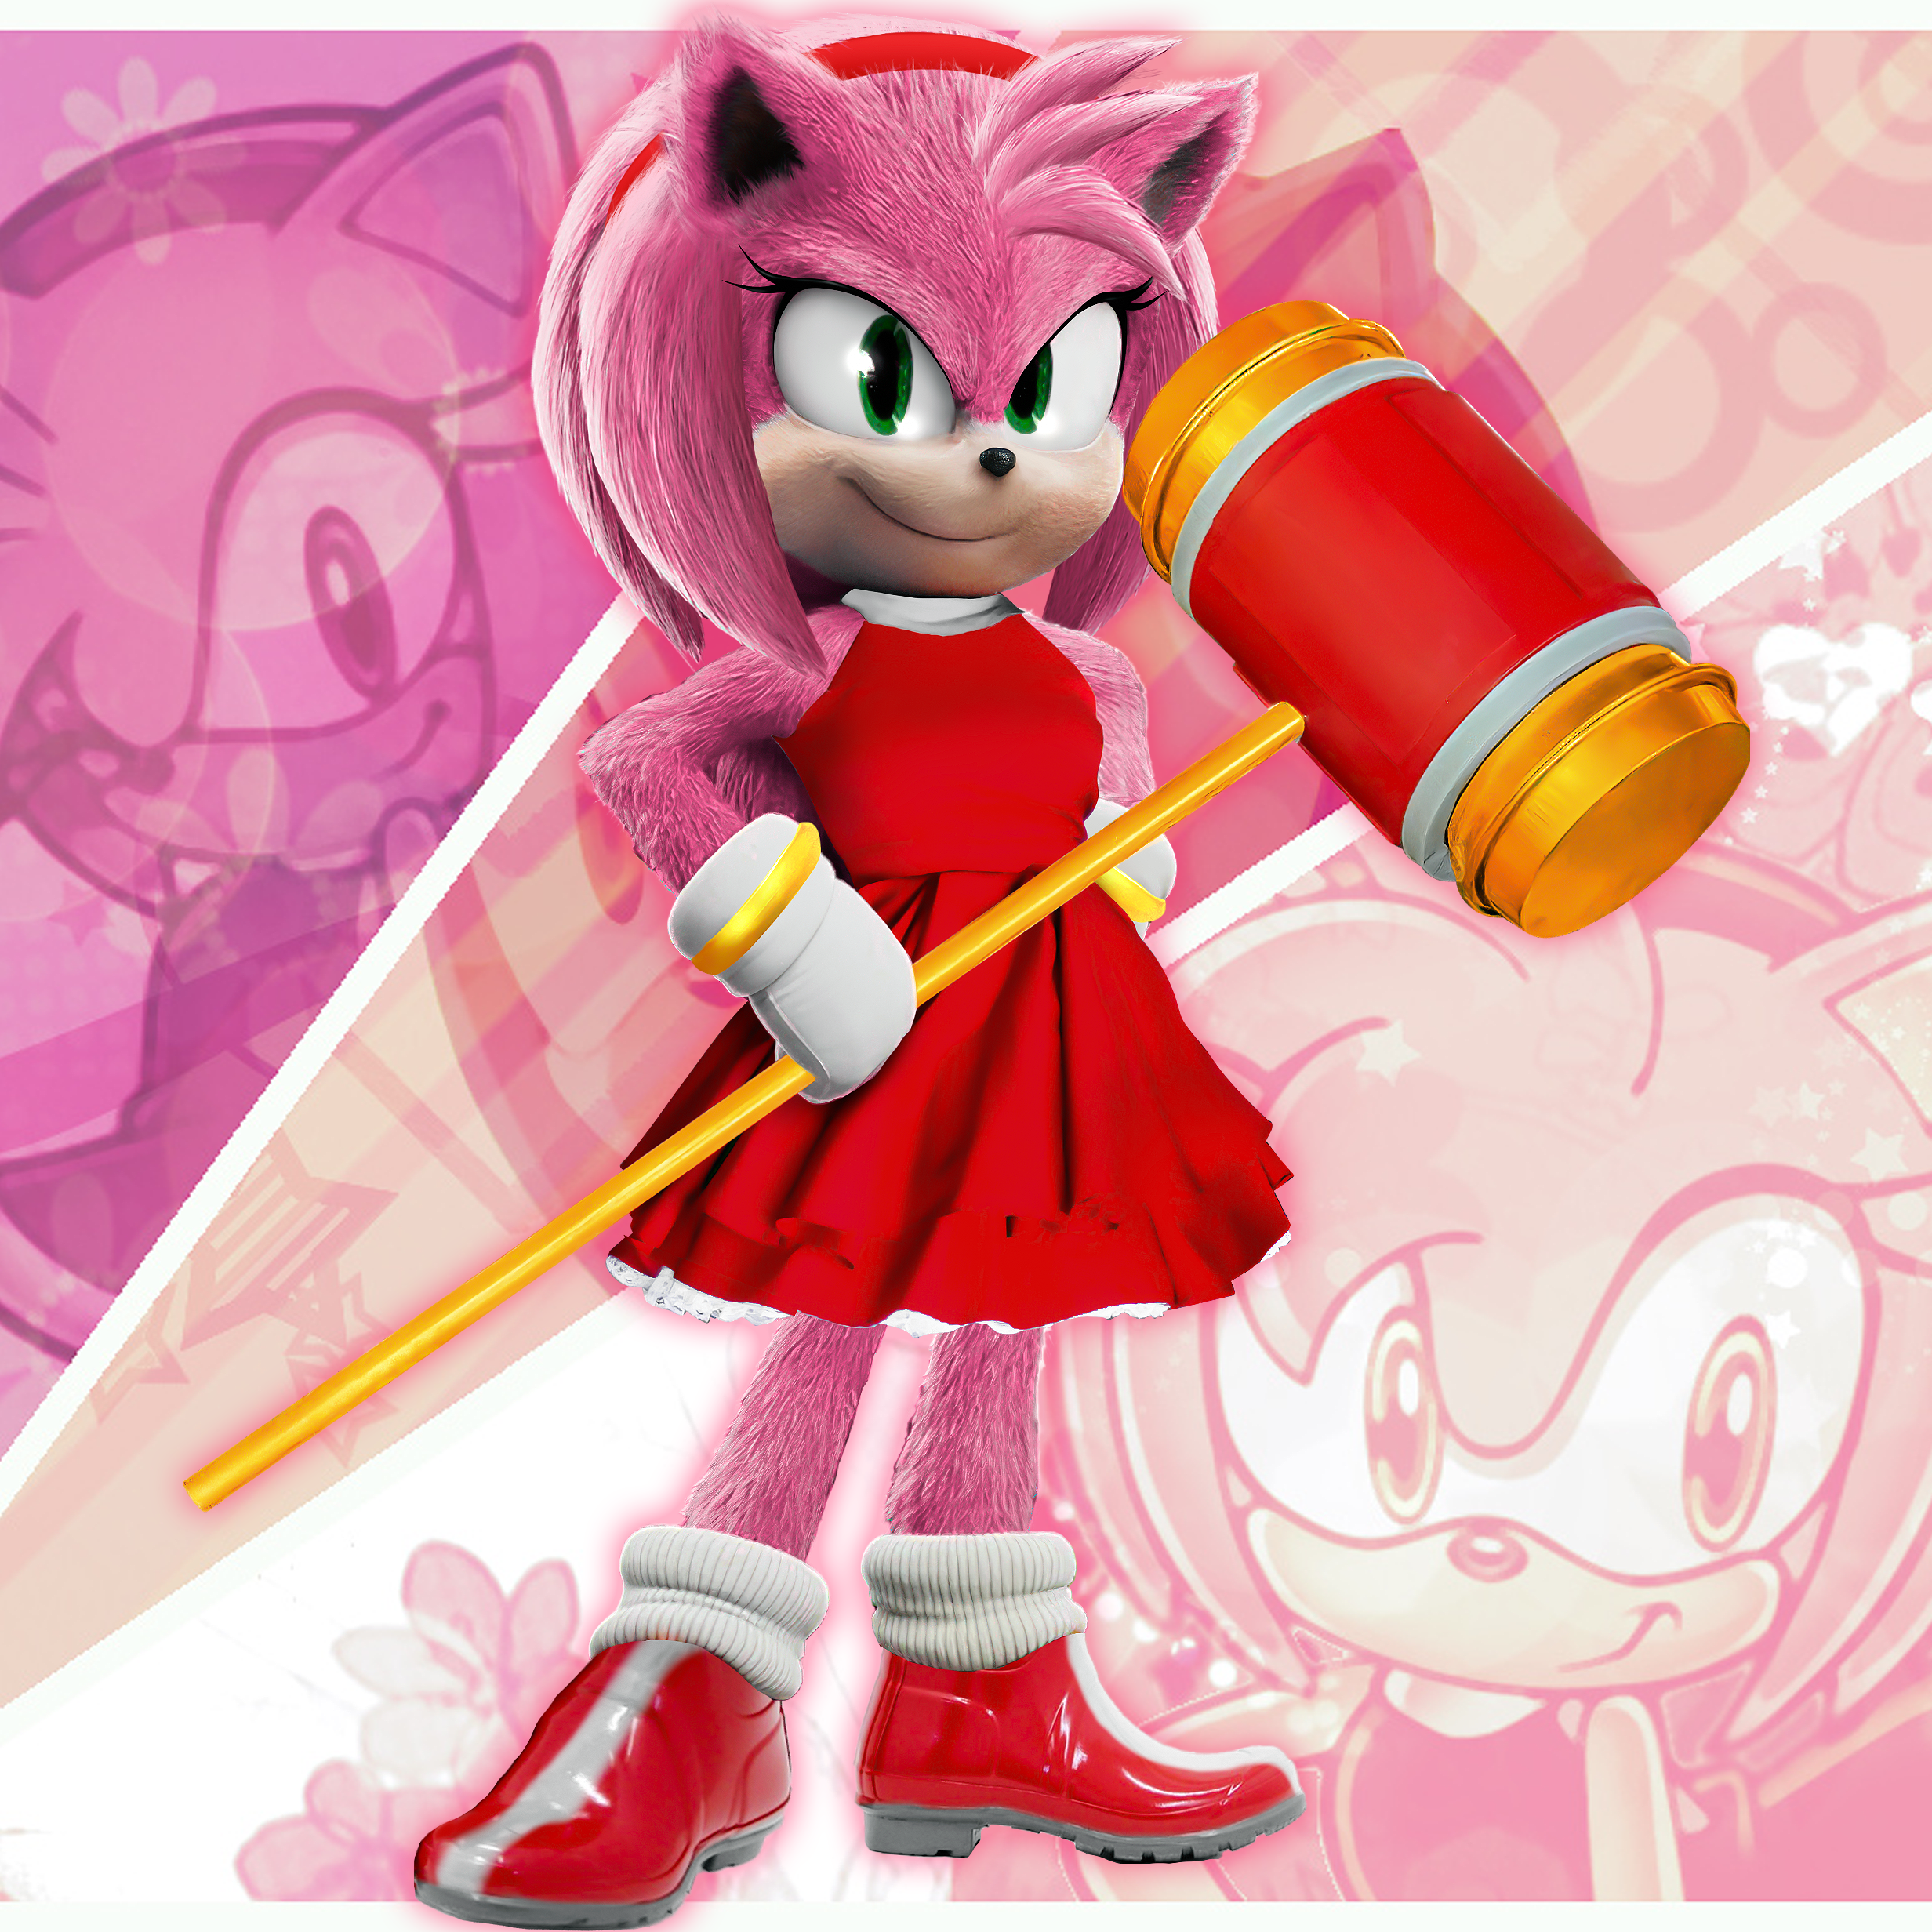 Sonic The Hedgehog 2006 - Amy Rose Voice Sound - YouTube